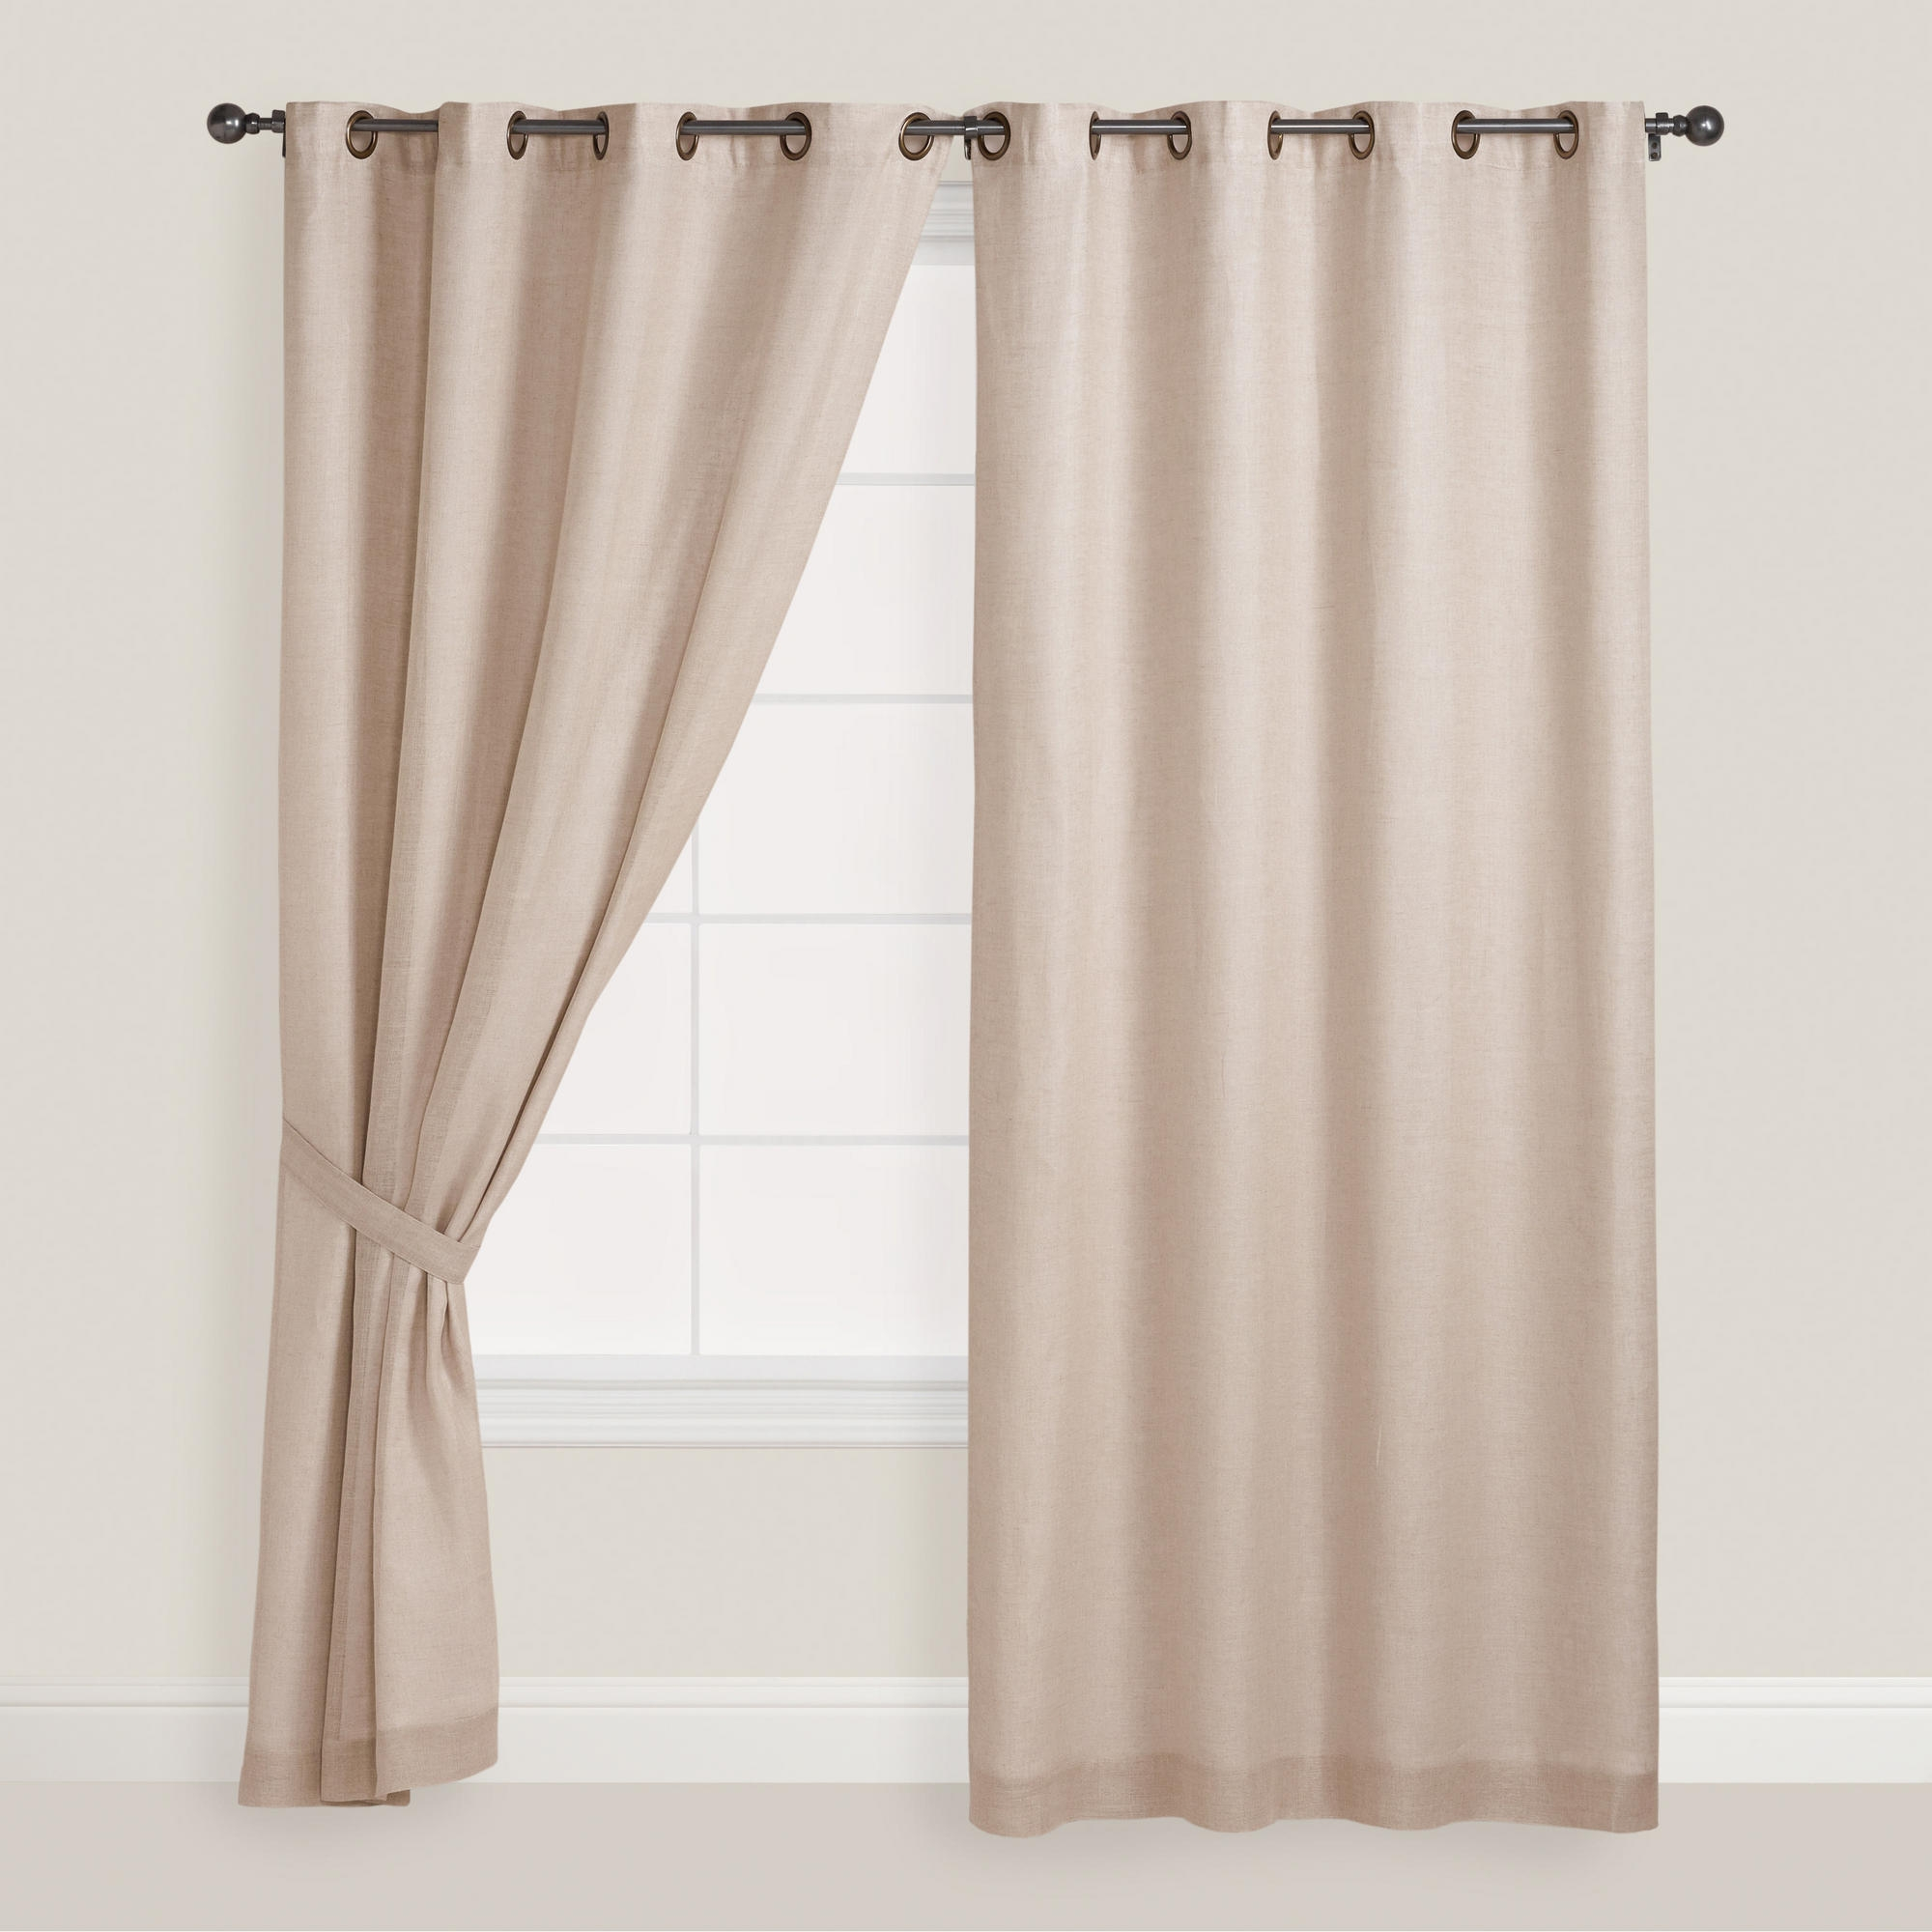 Extra Long Linen Drapes Business For Curtains Decoration Inside Extra Long Linen Curtains (Image 9 of 15)